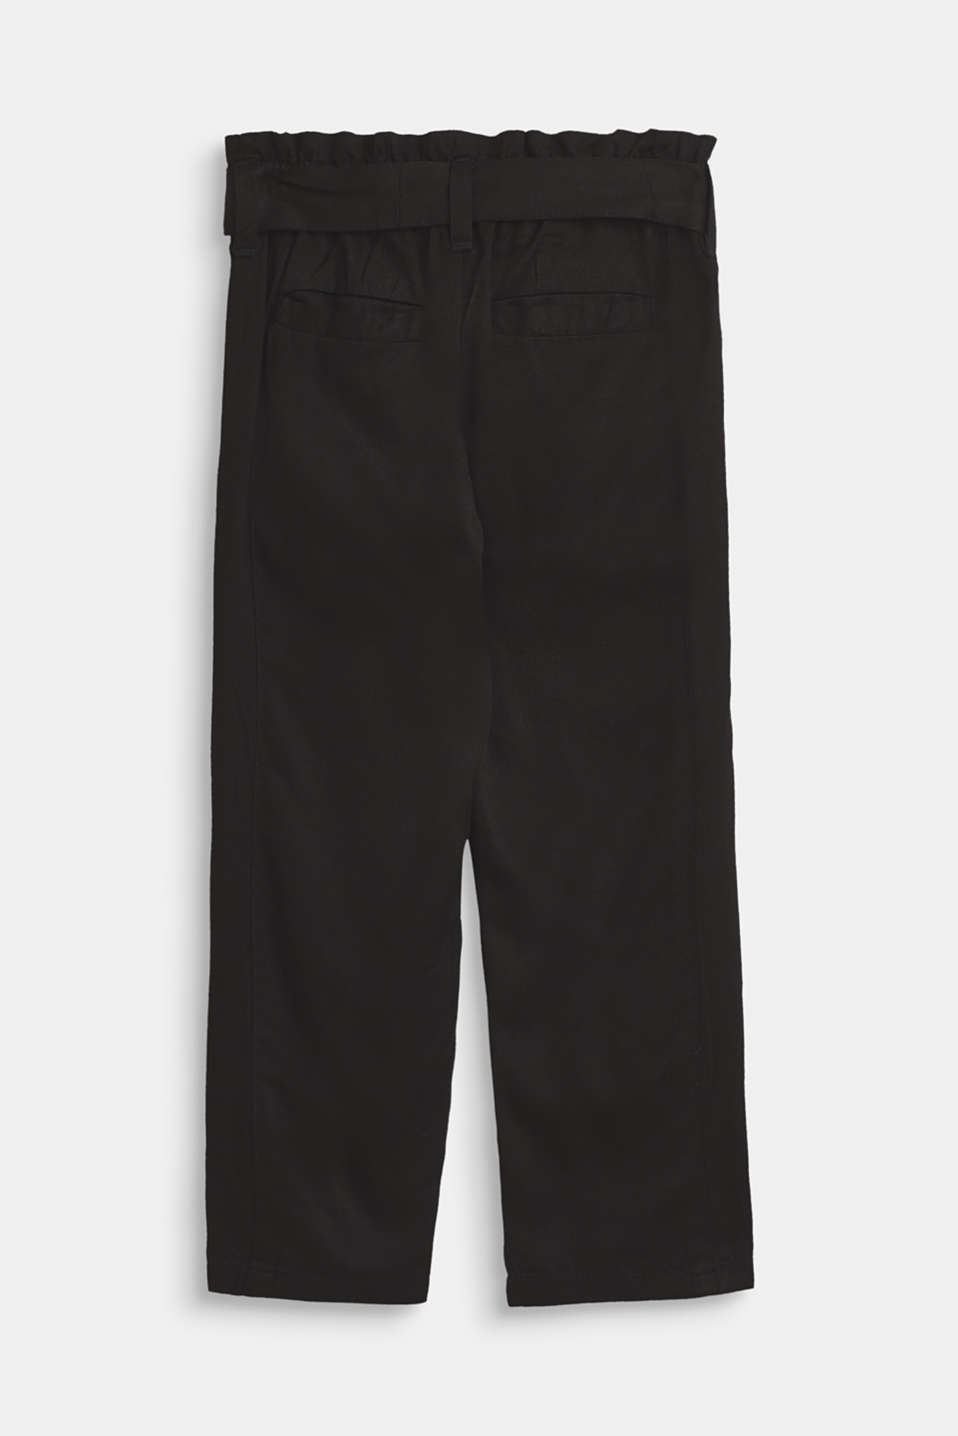 Flowing trousers in a paper bag style, ANTHRACITE, detail image number 1